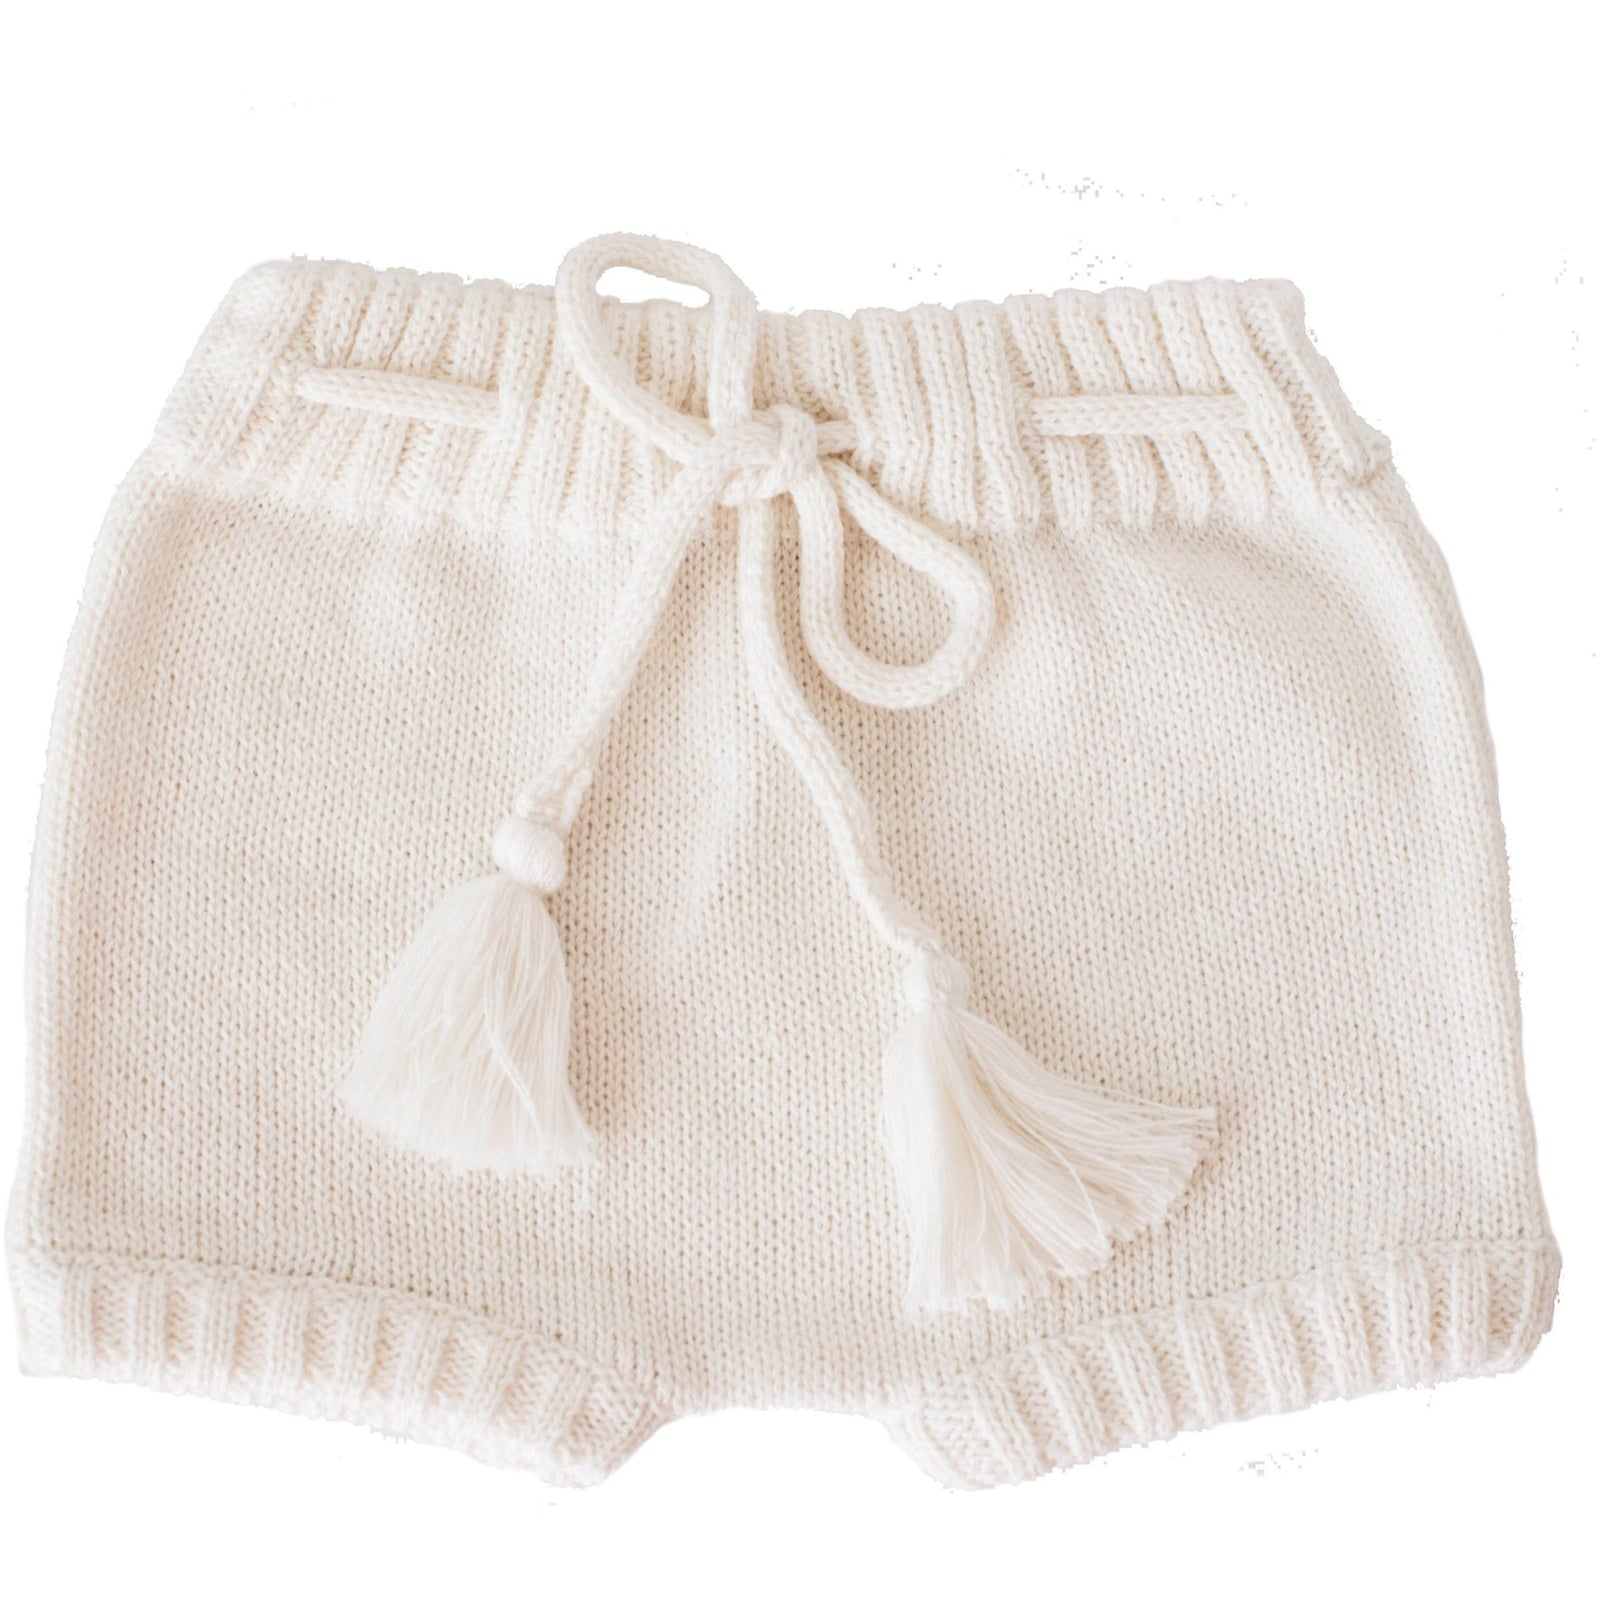 Ivory Knitted Shorties